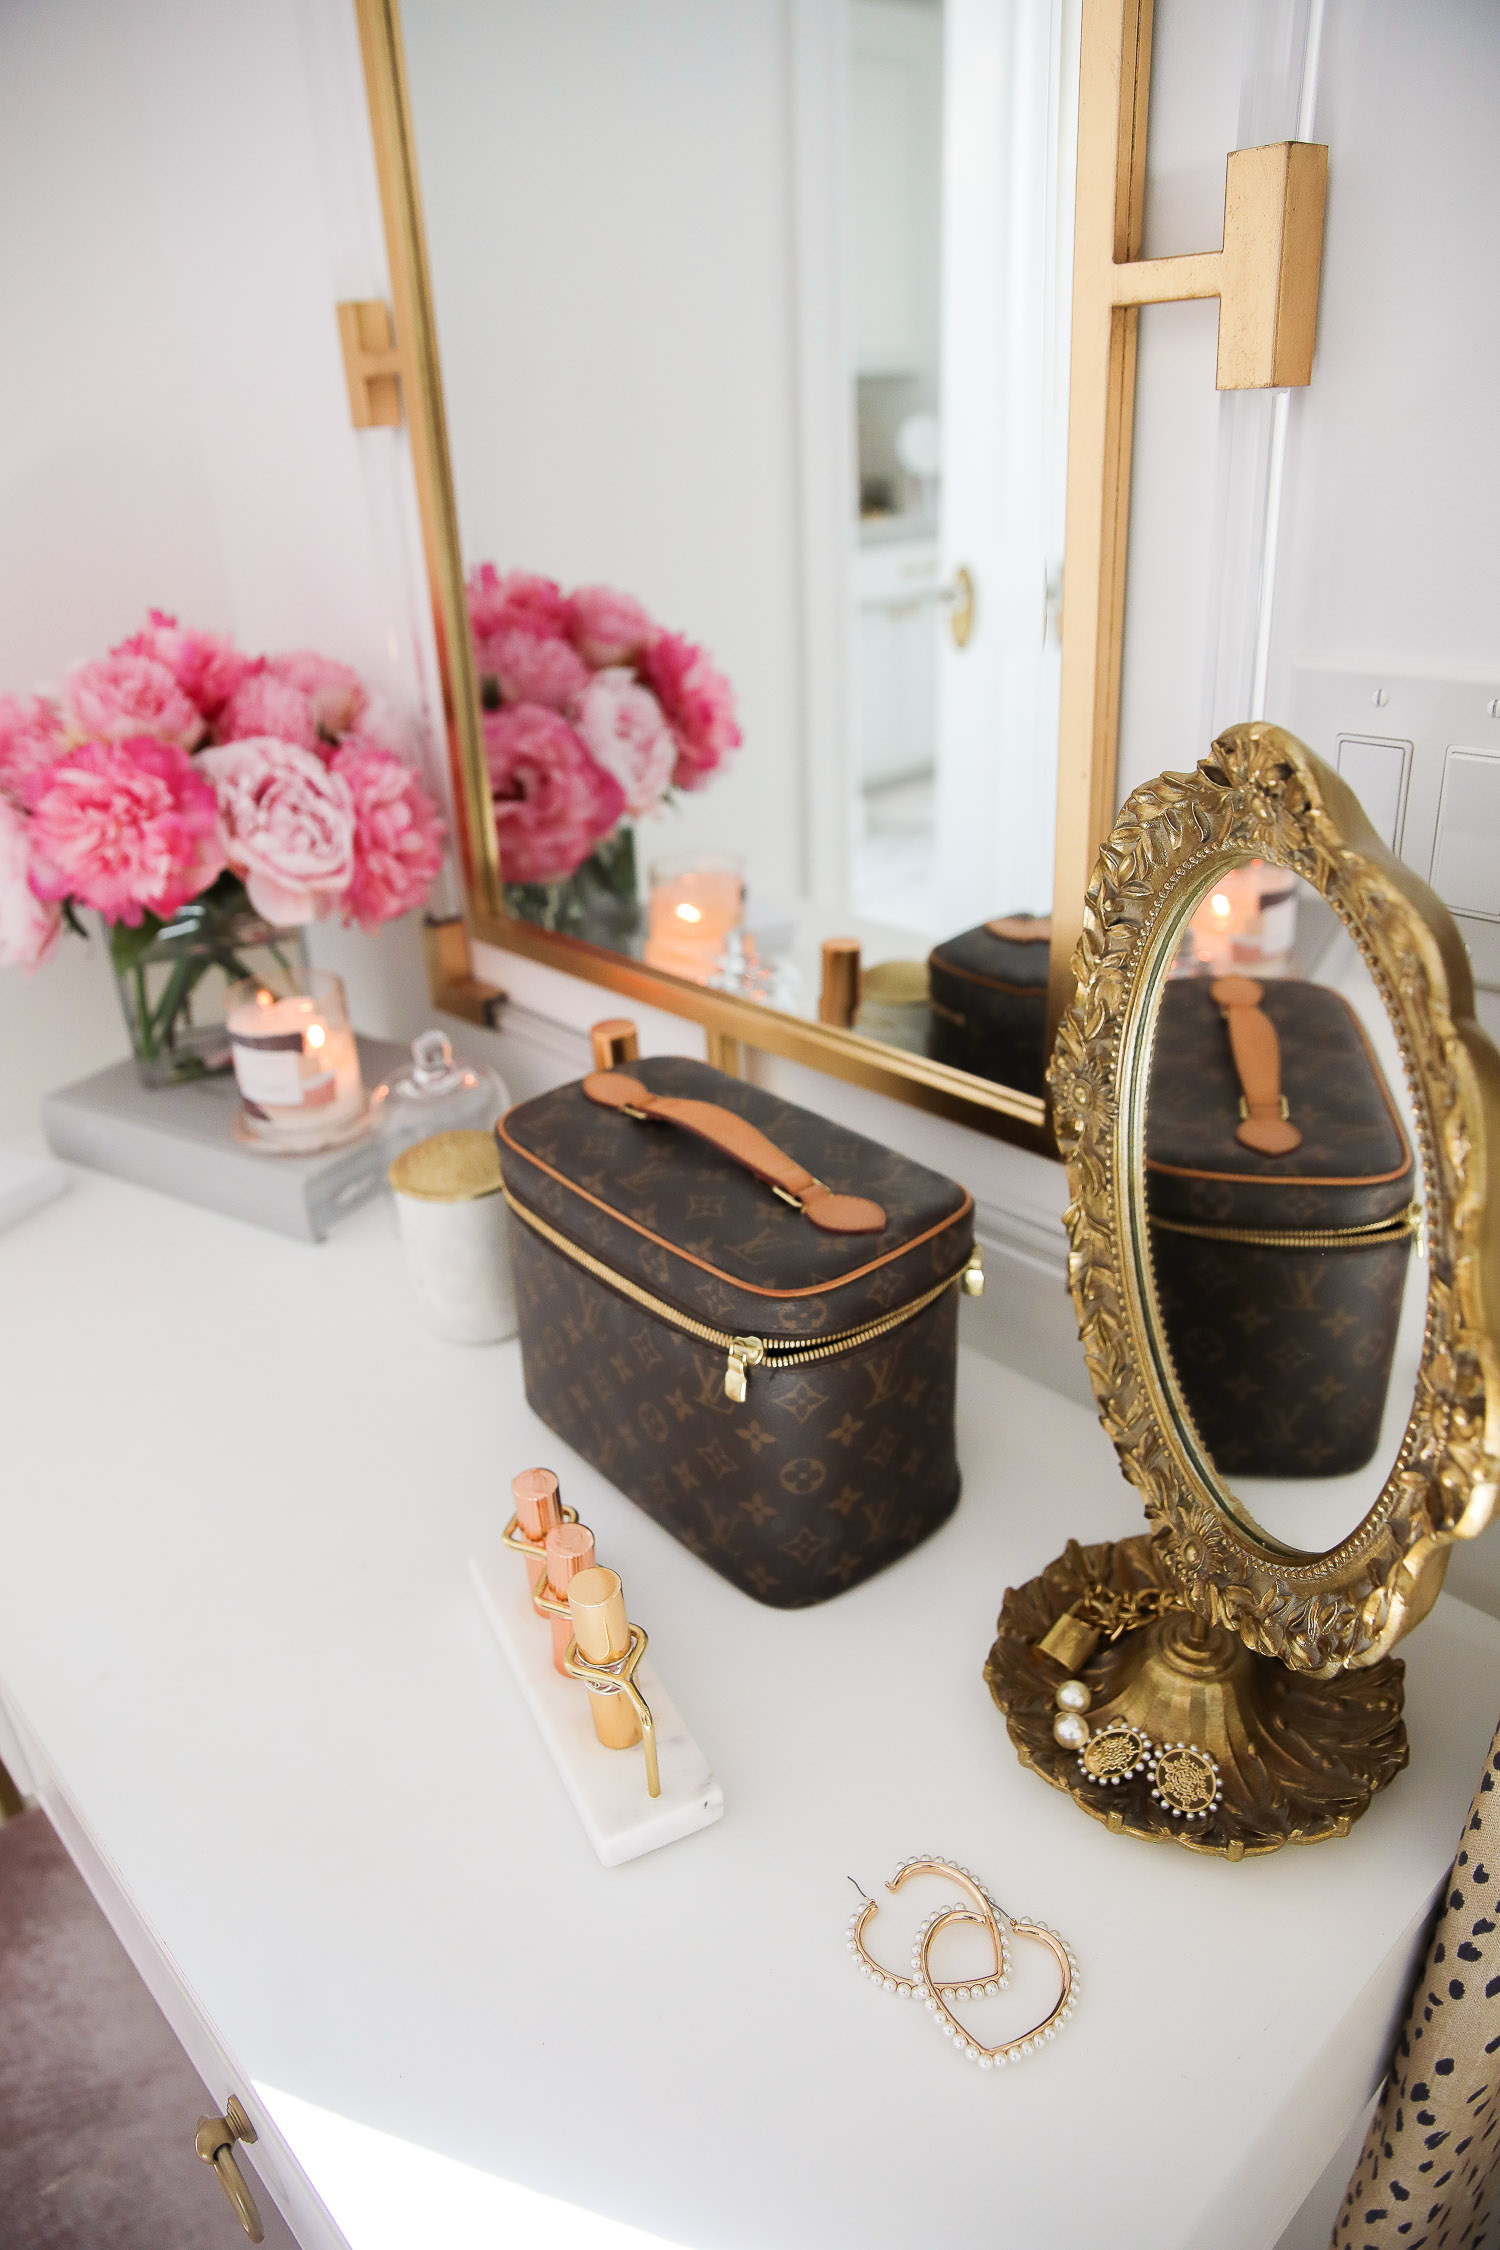 Work From Home Outfits by popular US fashion blog, The Sweetest Thing: image of a vanity with a vase of pink roses, marble and gold lipstick organizer, pearl heart shape earrings, and Louis Vuitton makeup case.